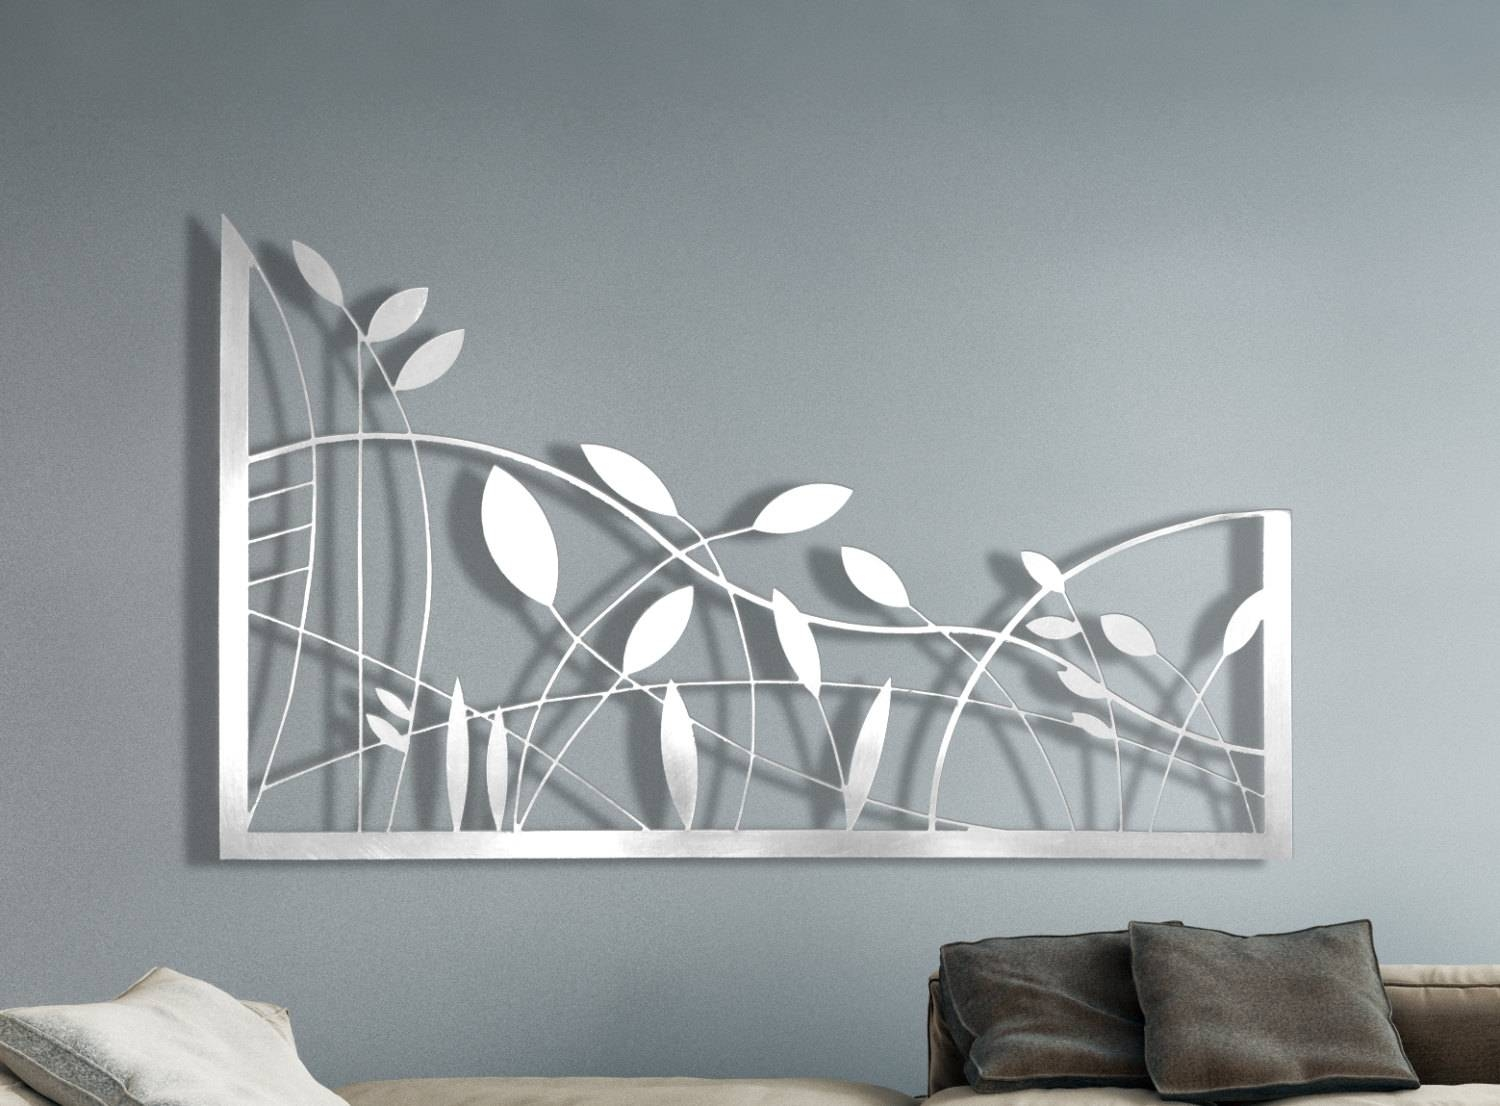 Laser Cut Metal Decorative Wall Art Panel Sculpture For Home For Latest Laser Cut Metal Wall Art (View 4 of 20)